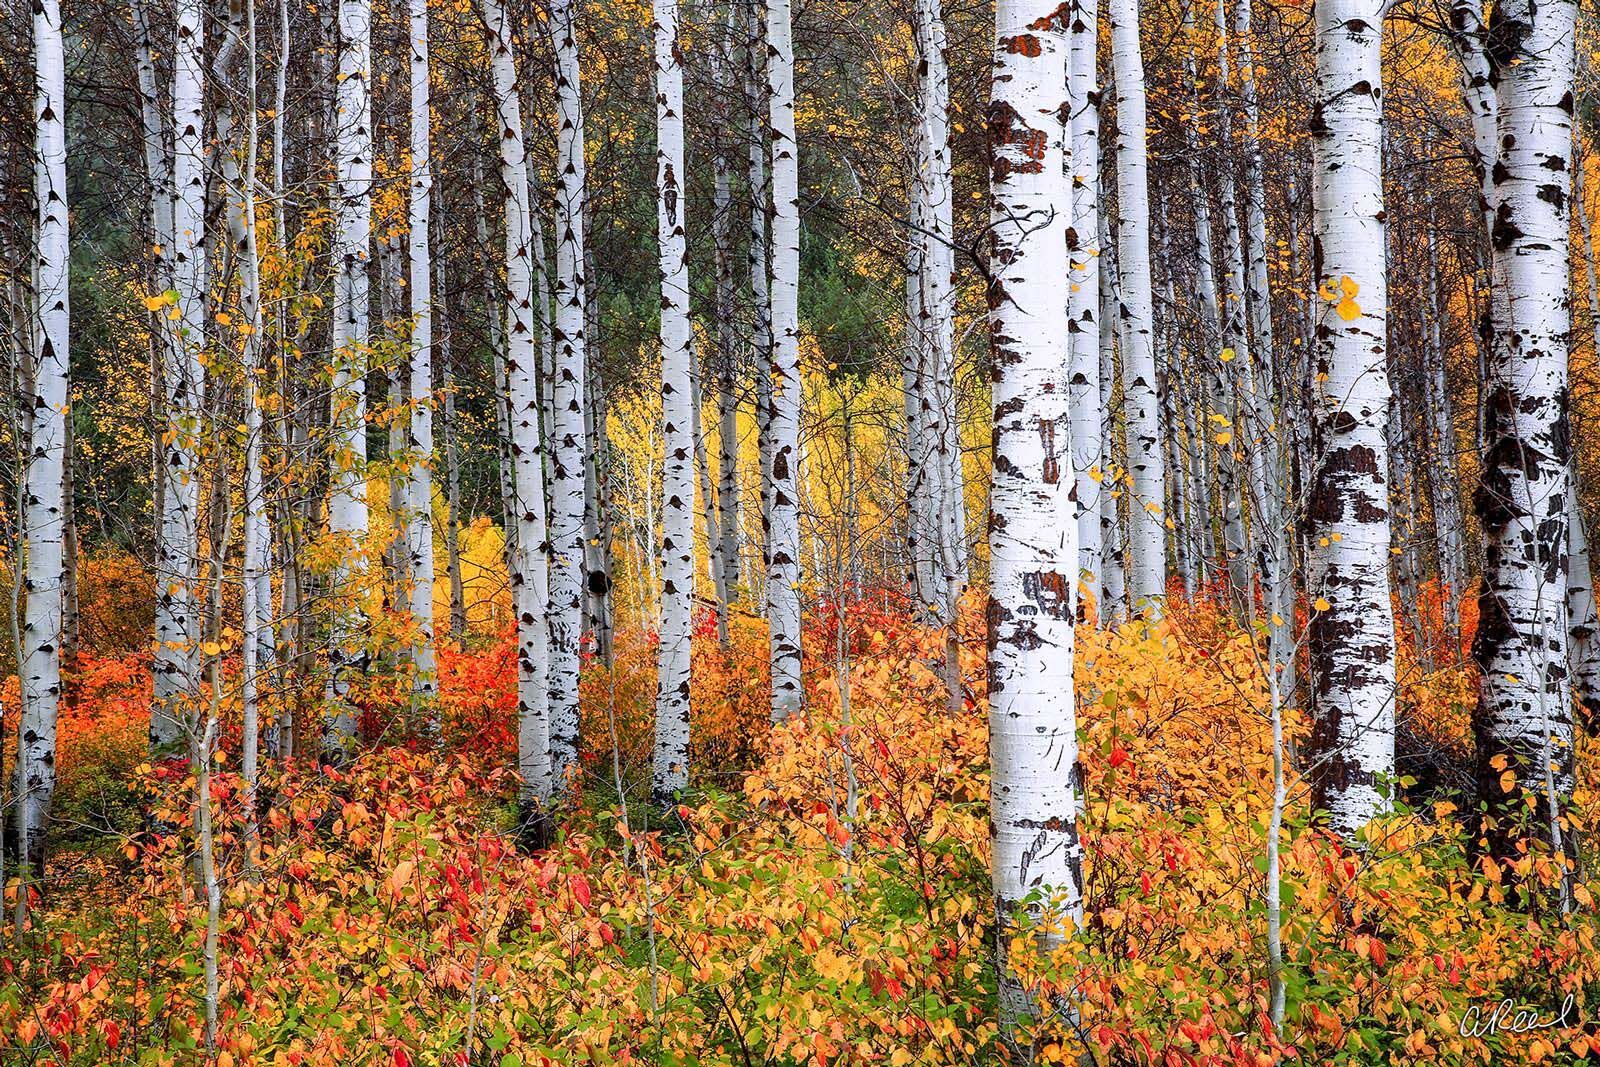 A photograph of a forest of aspen trees with red and orange bushes at their base.